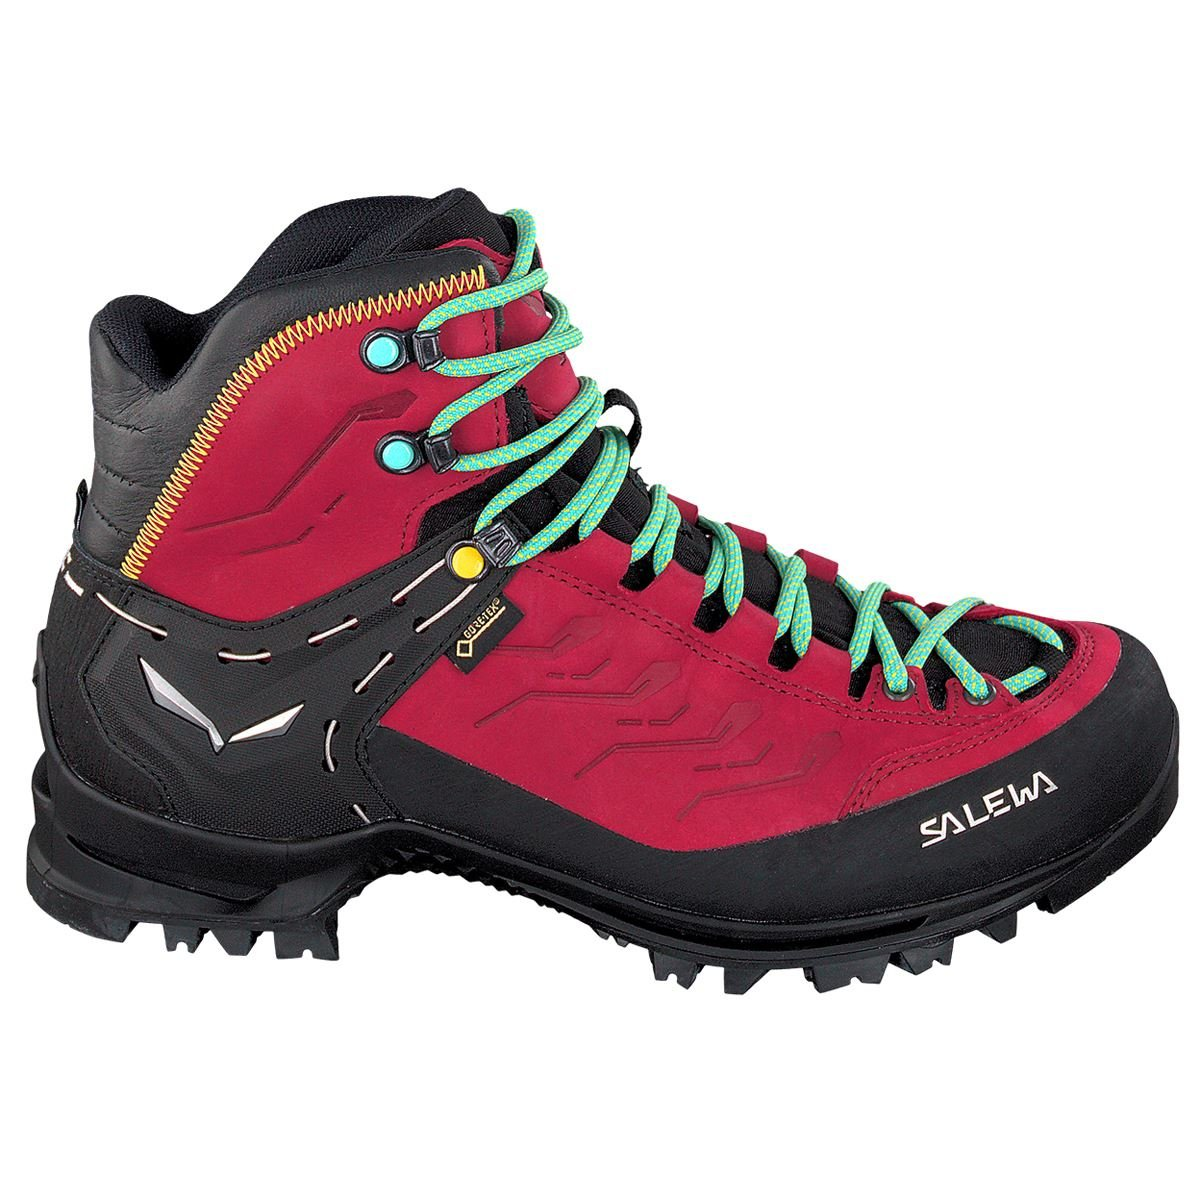 Salewa Women's Rapace GTX Mountaineering Boot, Tawny Port/Limelight, 6.5